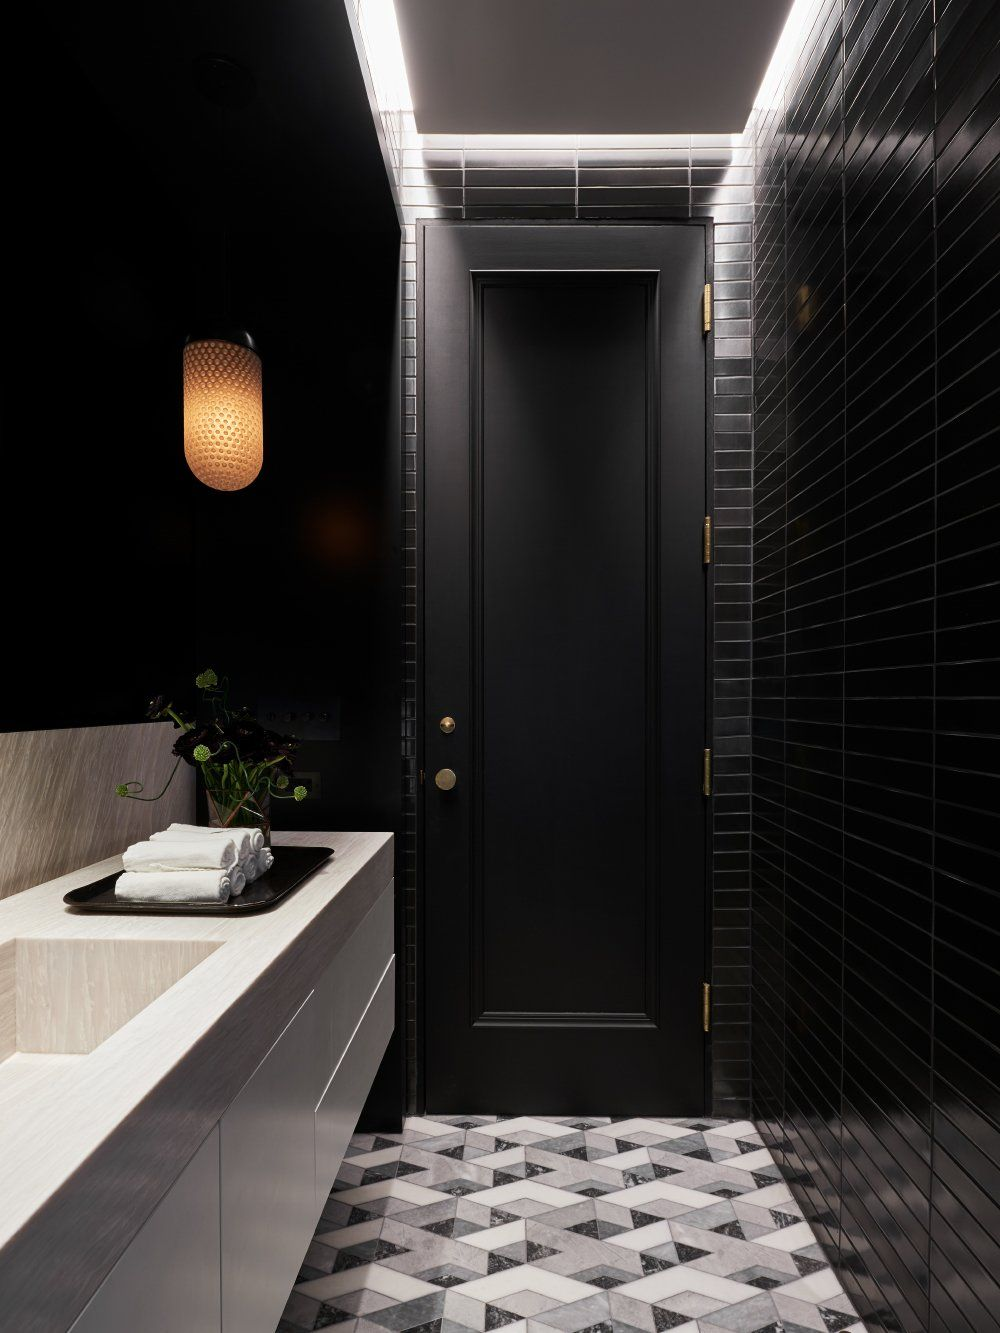 The closet was converted into a powder room with geometric floor tiles and black walls